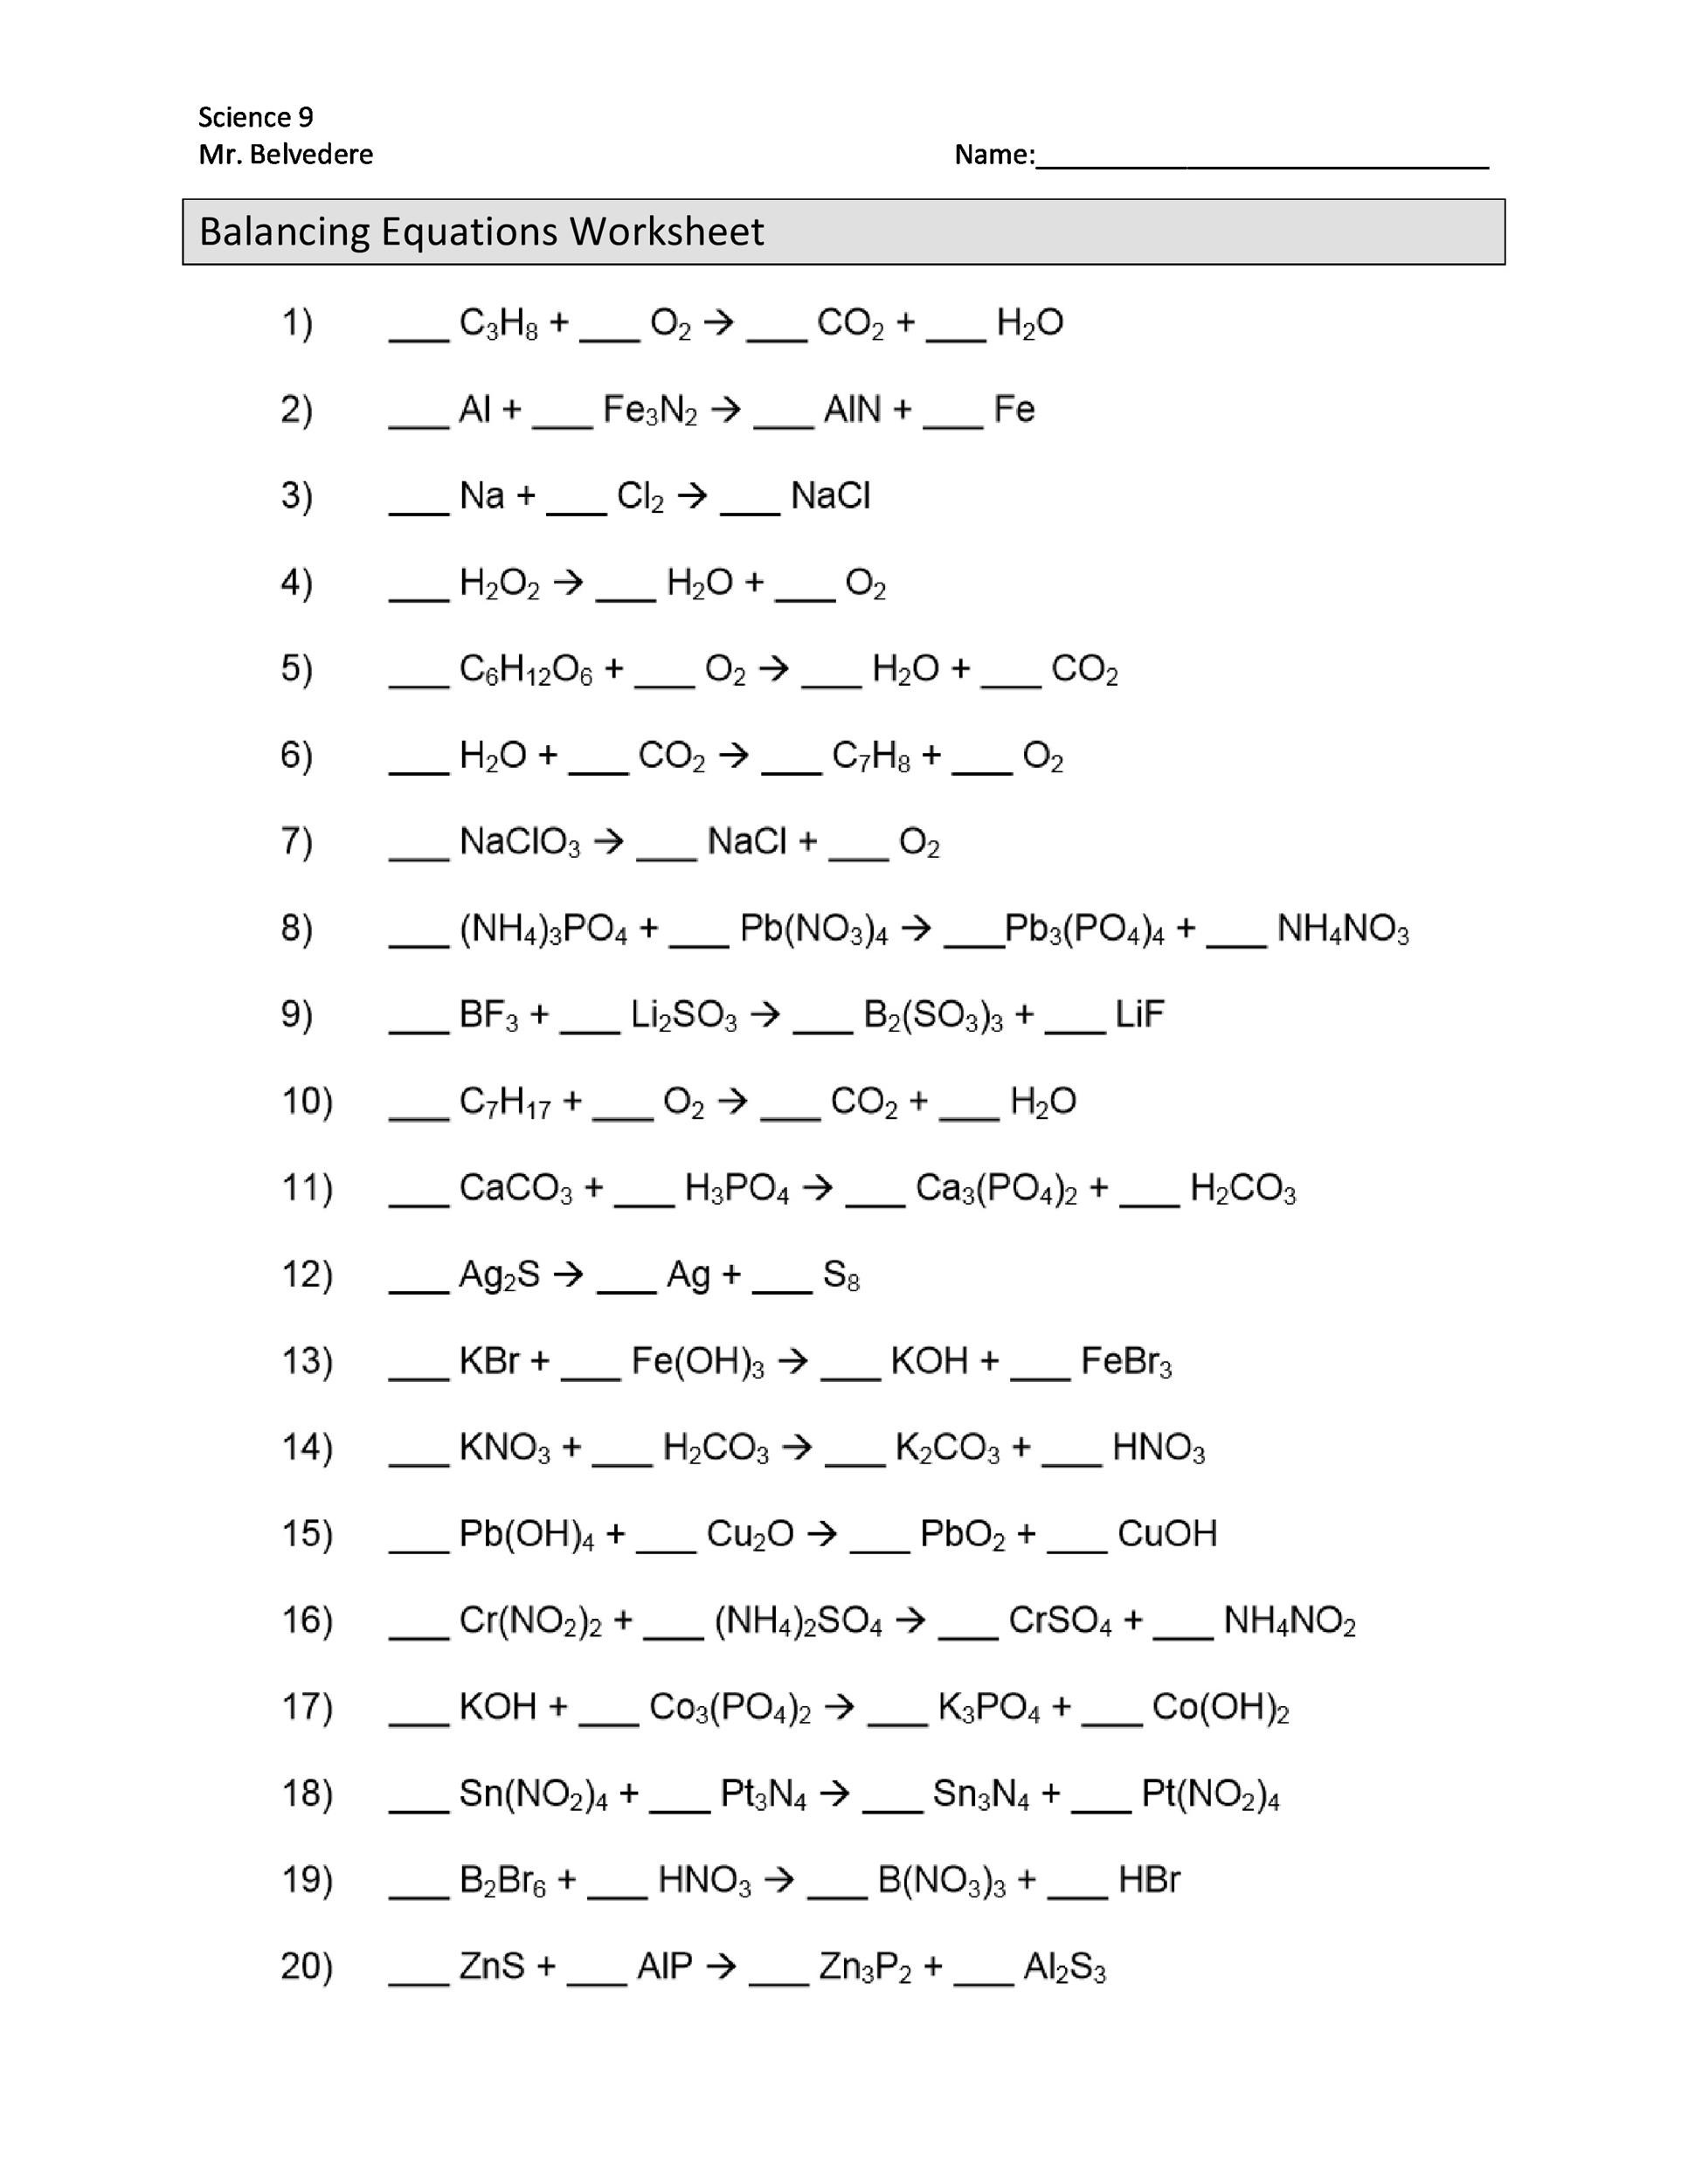 Balancing Nuclear Equations Worksheet Answers Nuclear Equation Problems 🏷️ Chemteam Writing Alpha and